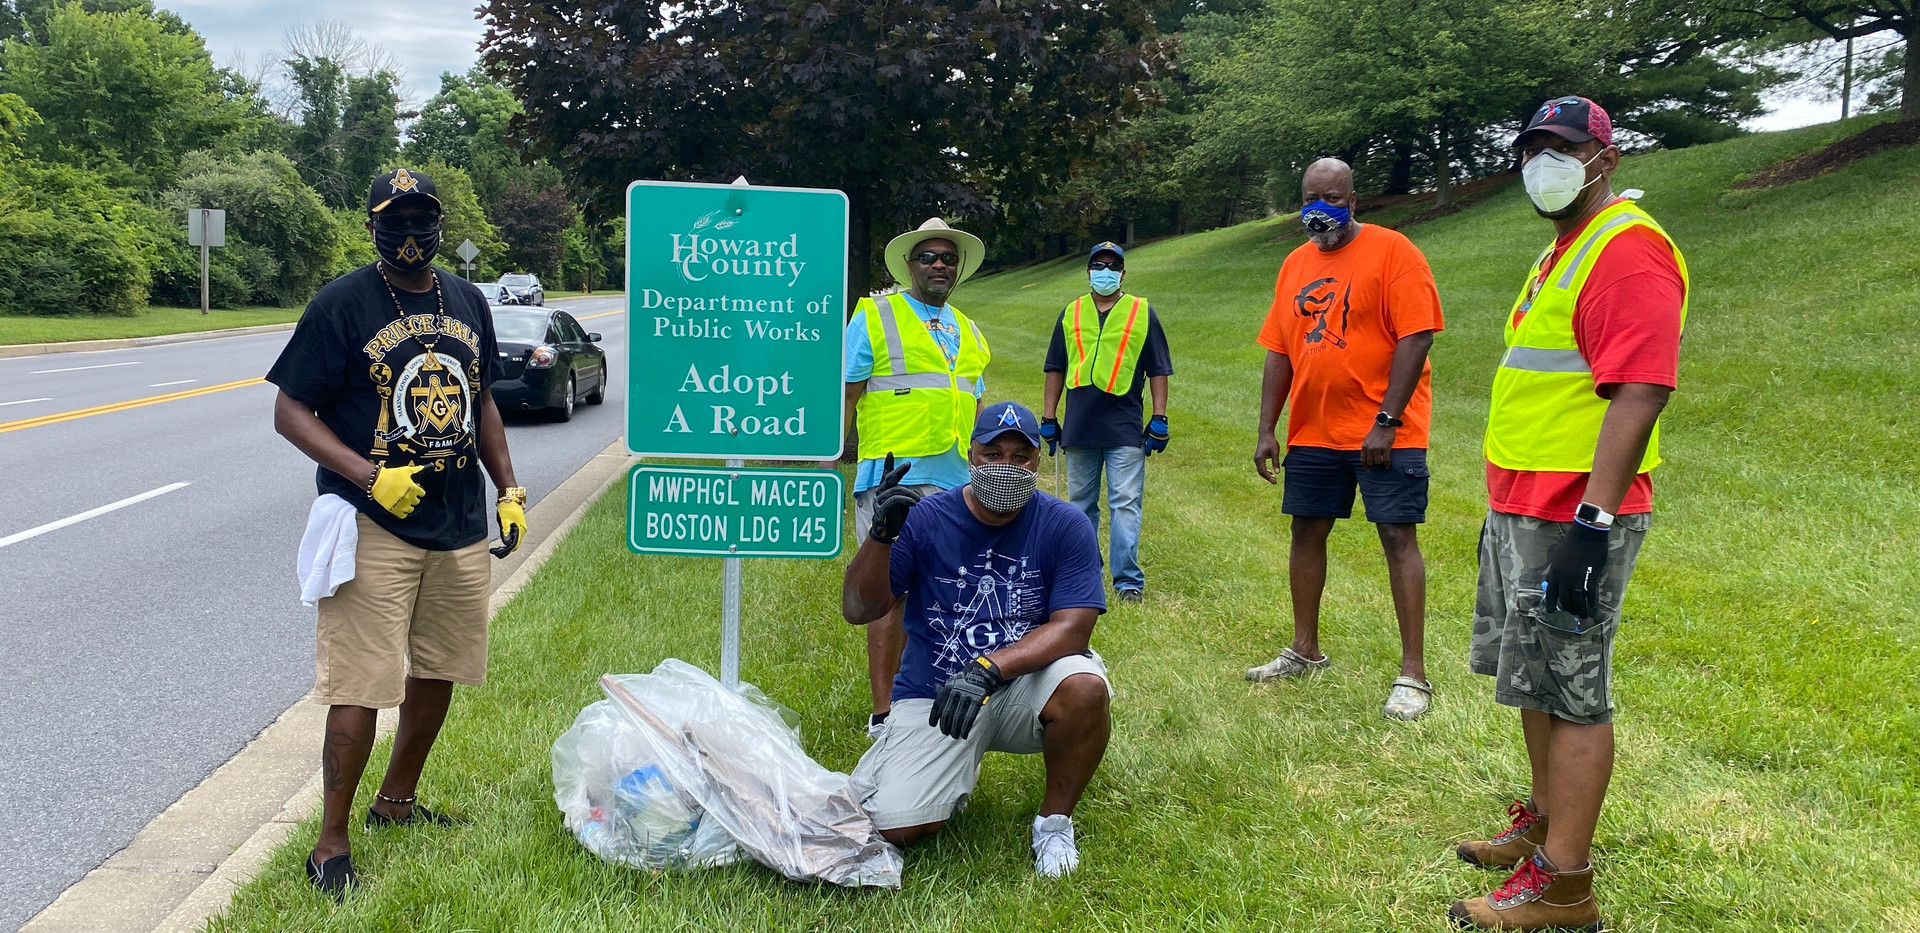 Adopt A Road July 2020